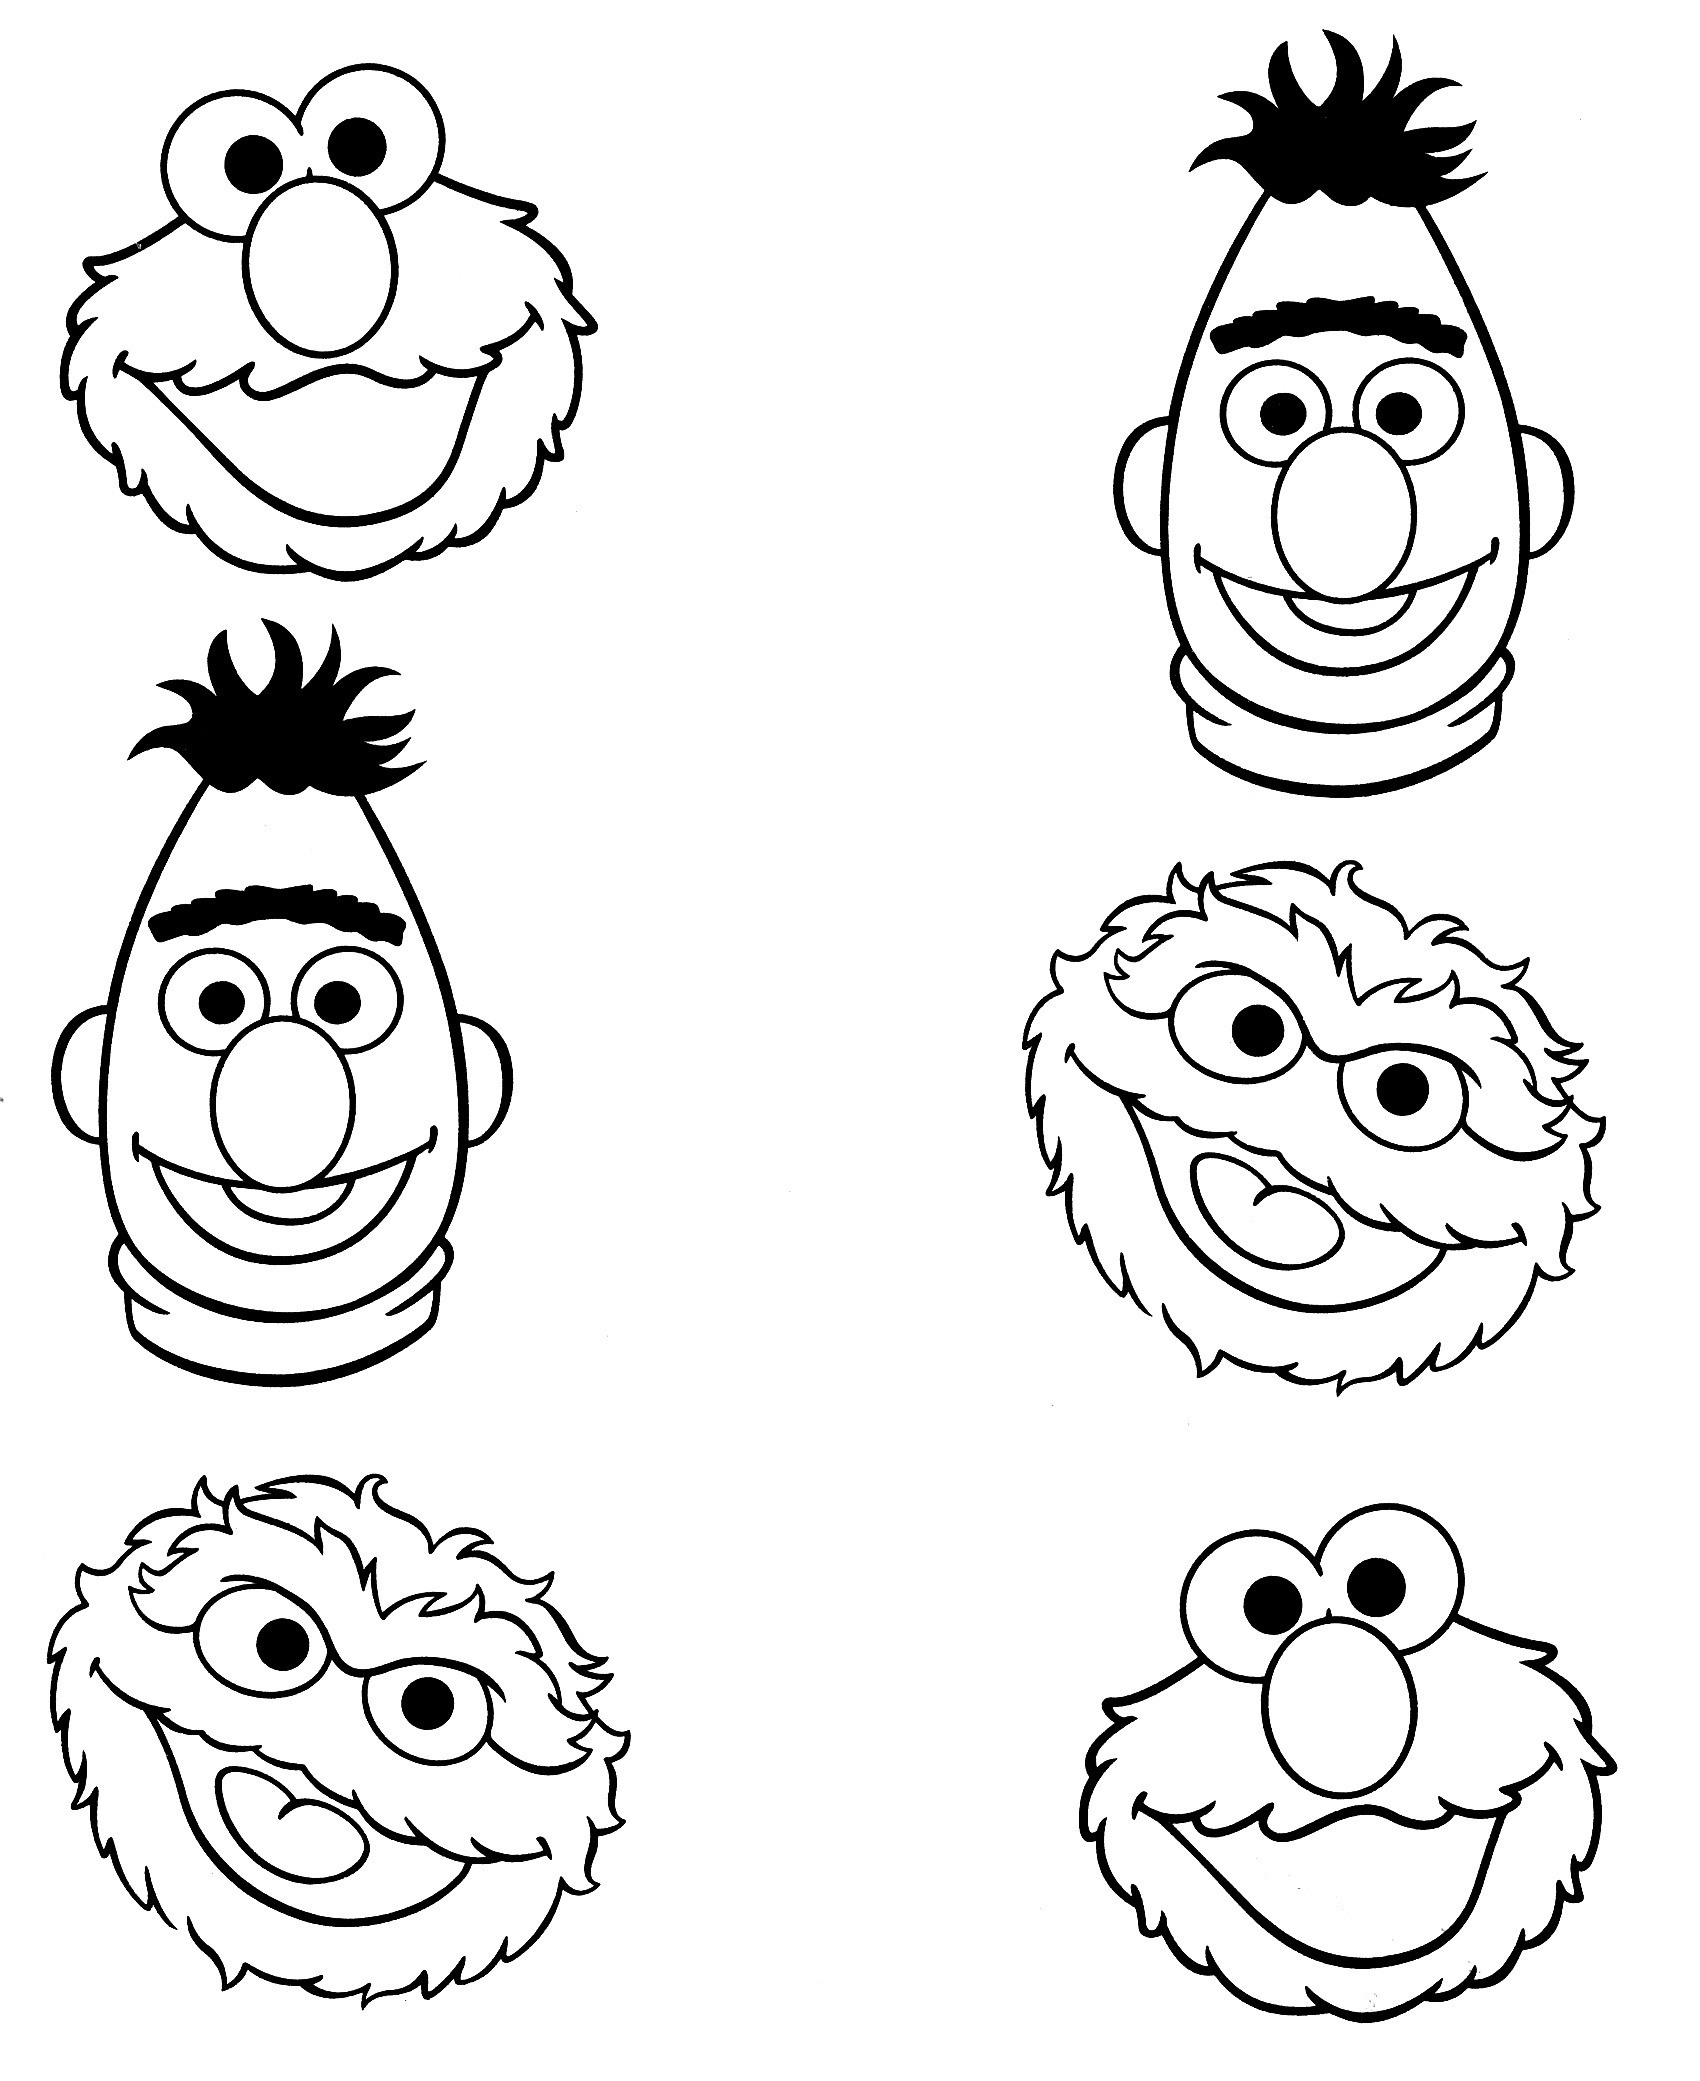 printable sesame street coloring pages | coloring me - Character Coloring Pages Print